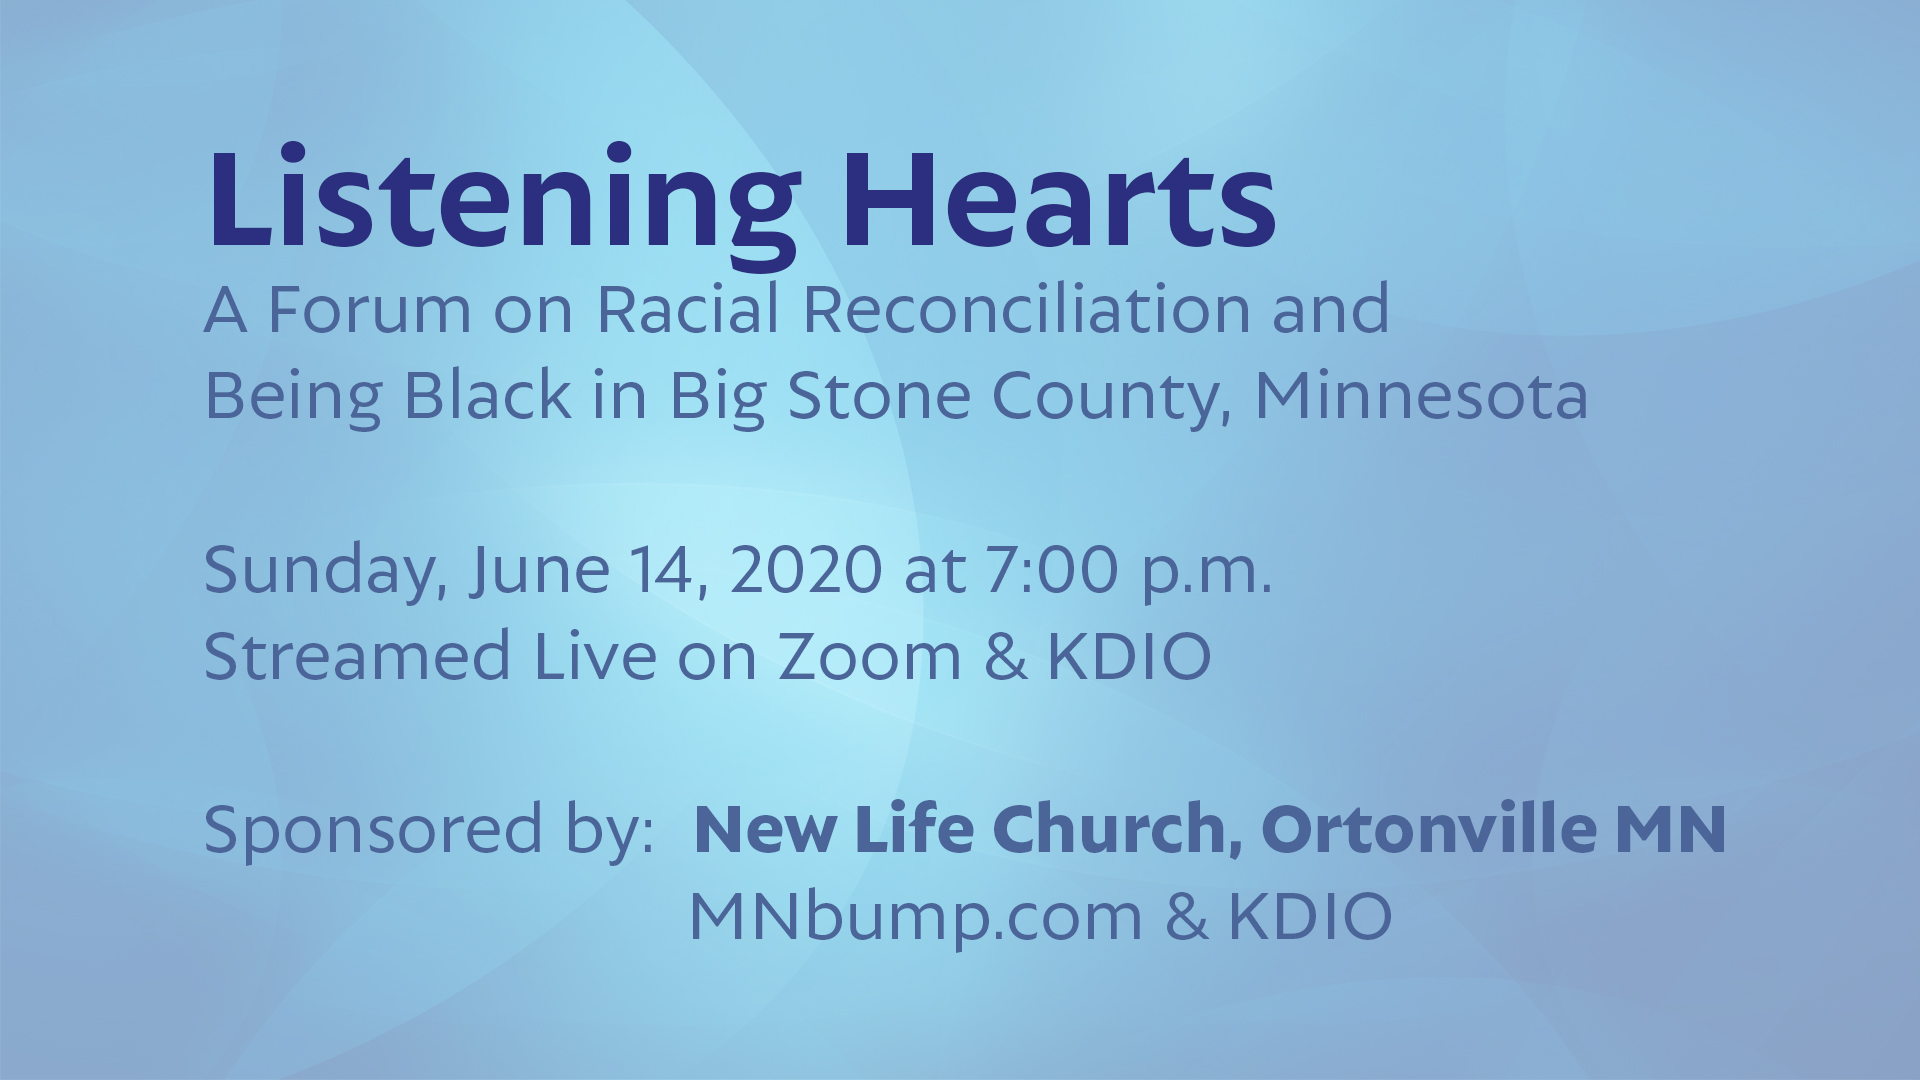 Listening Hearts.  A Forum on Racial Reconciliation and Being Black in Big Stone County Minnesota